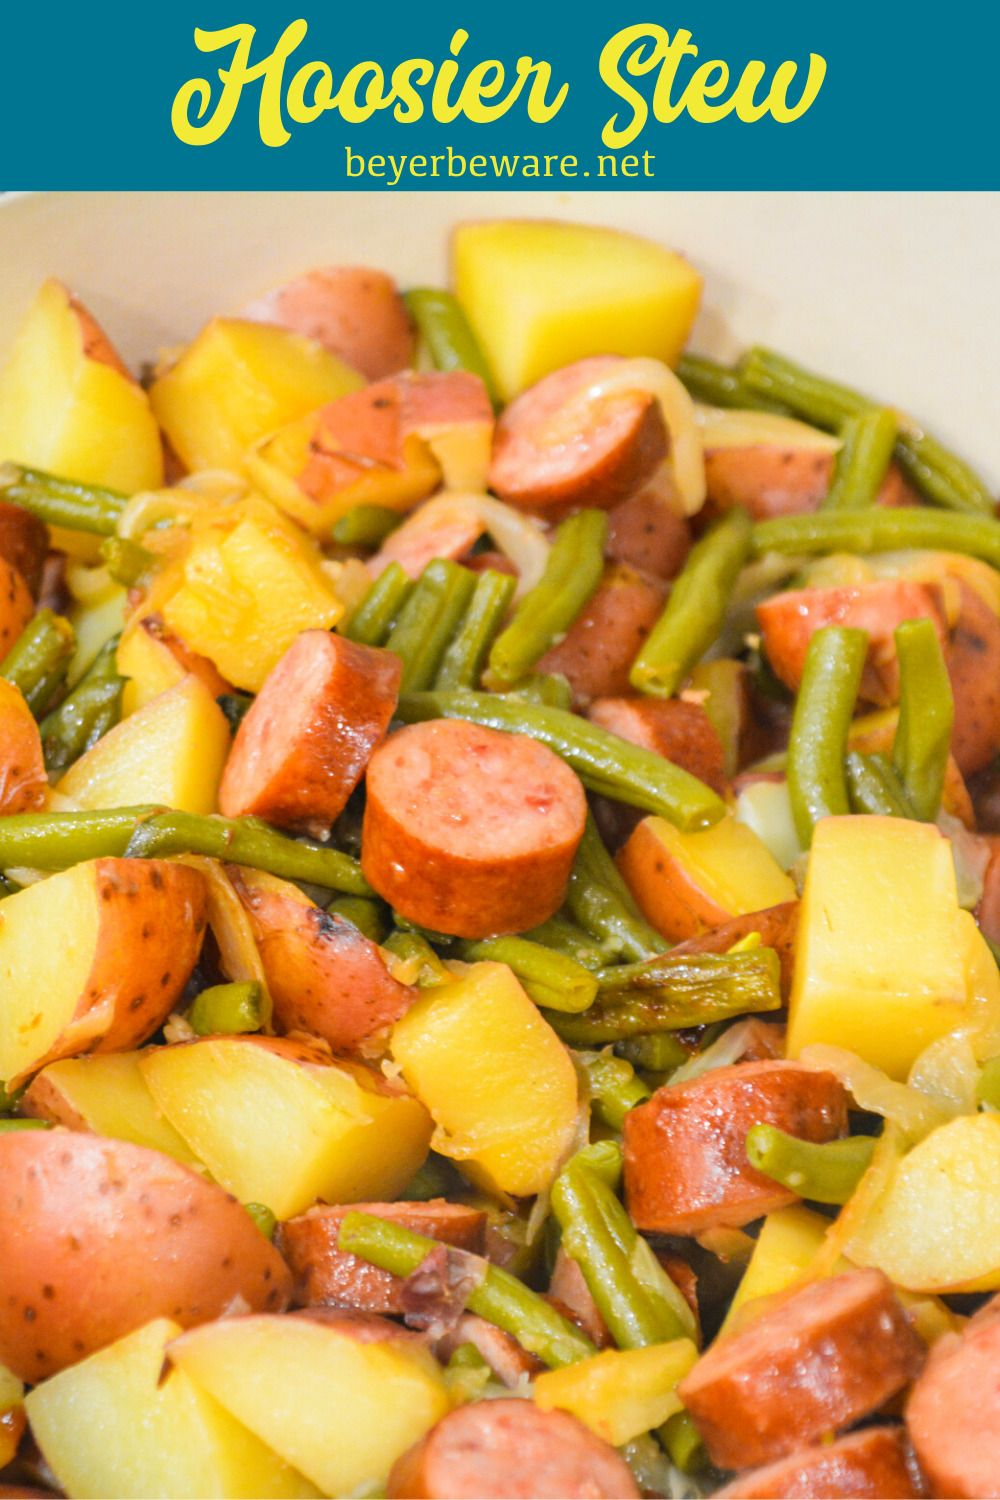 Hoosier stew green beans potatoes and smoked sausage in